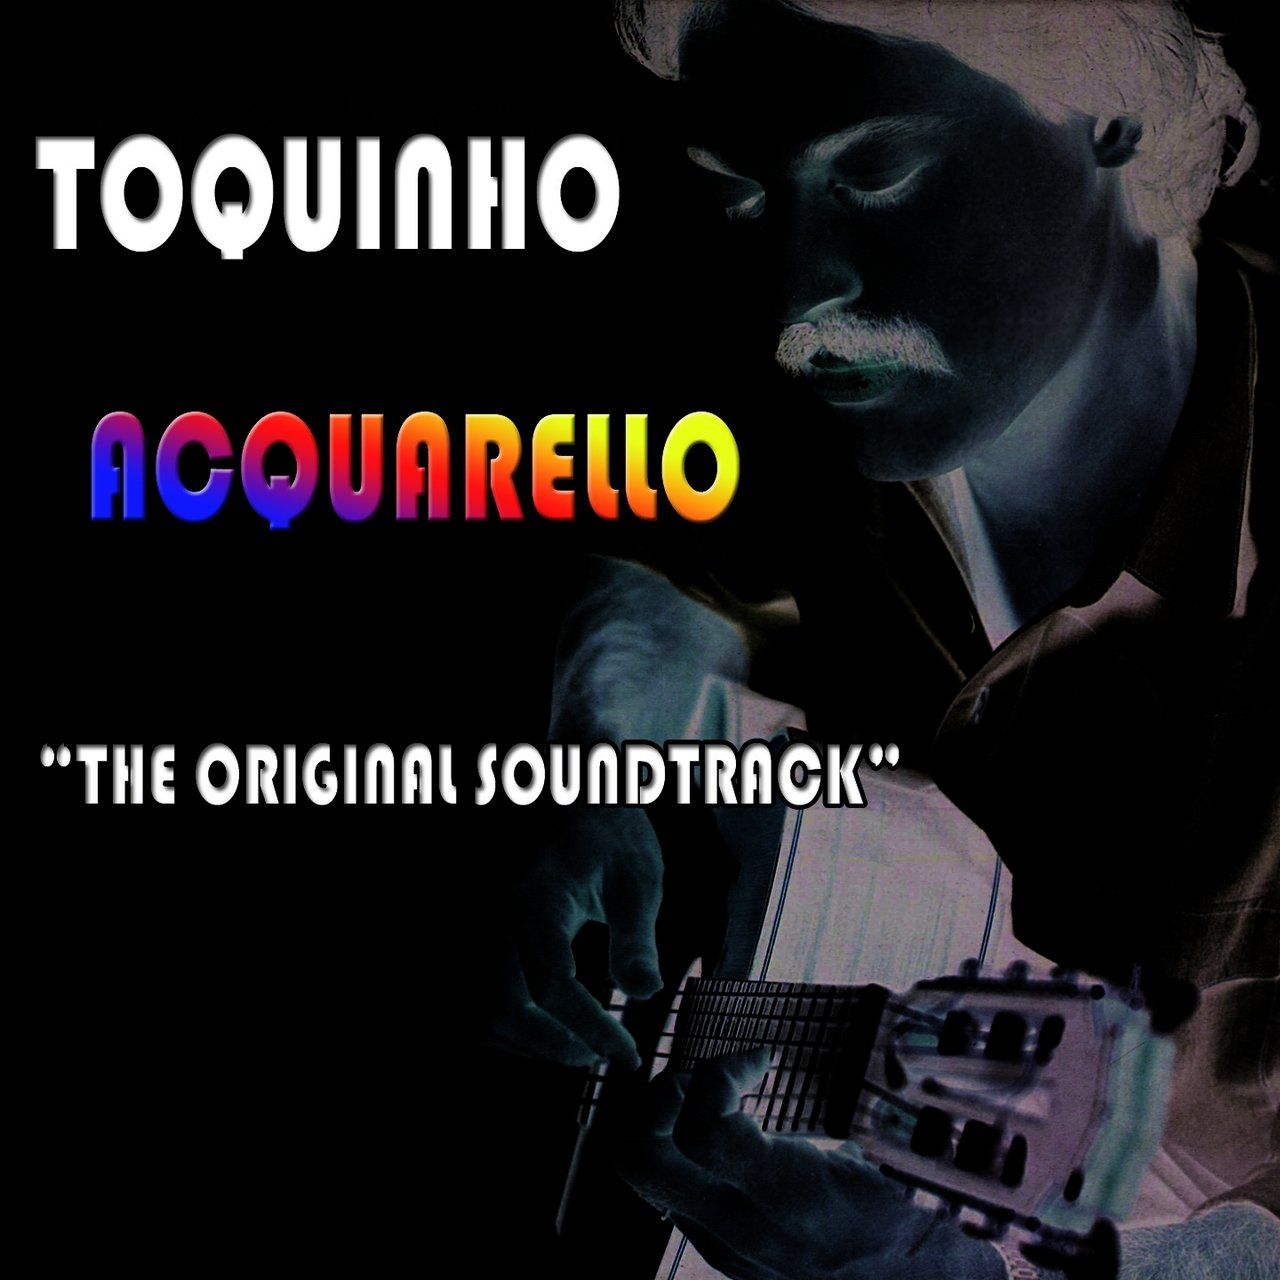 Acquarello: The Original Soundtrack